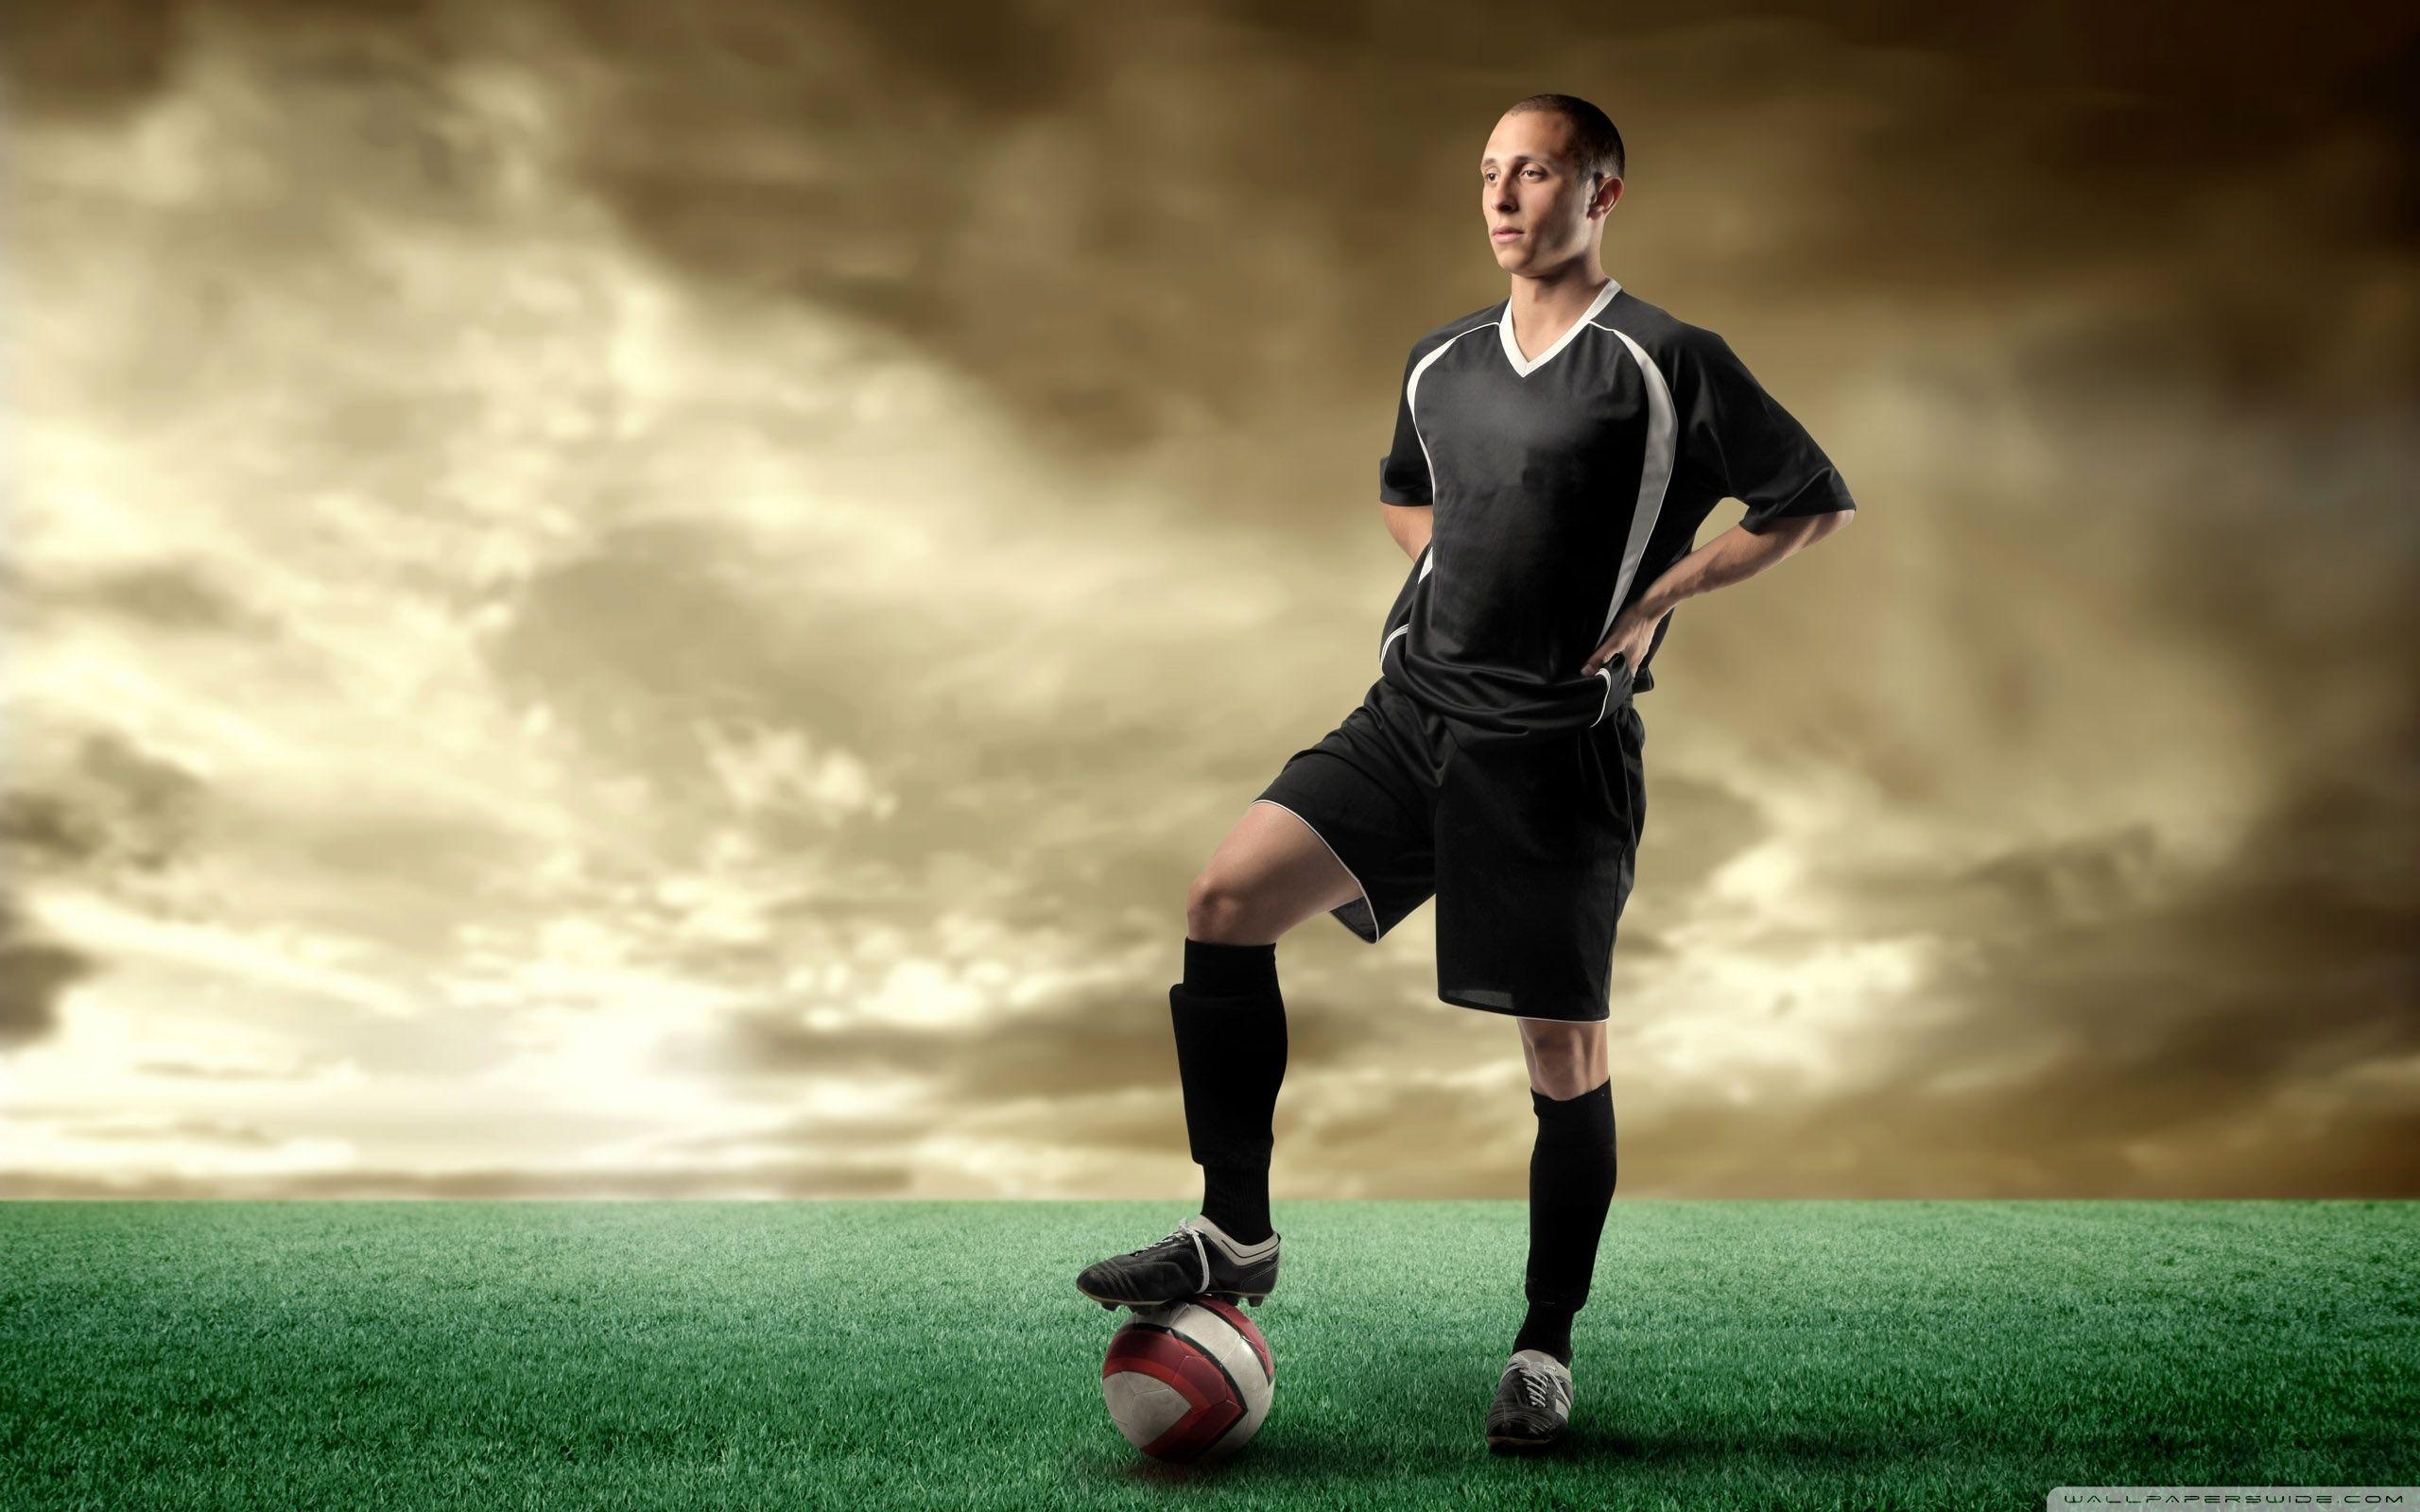 Soccer Player HD desktop wallpaper : Fullscreen : Mobile